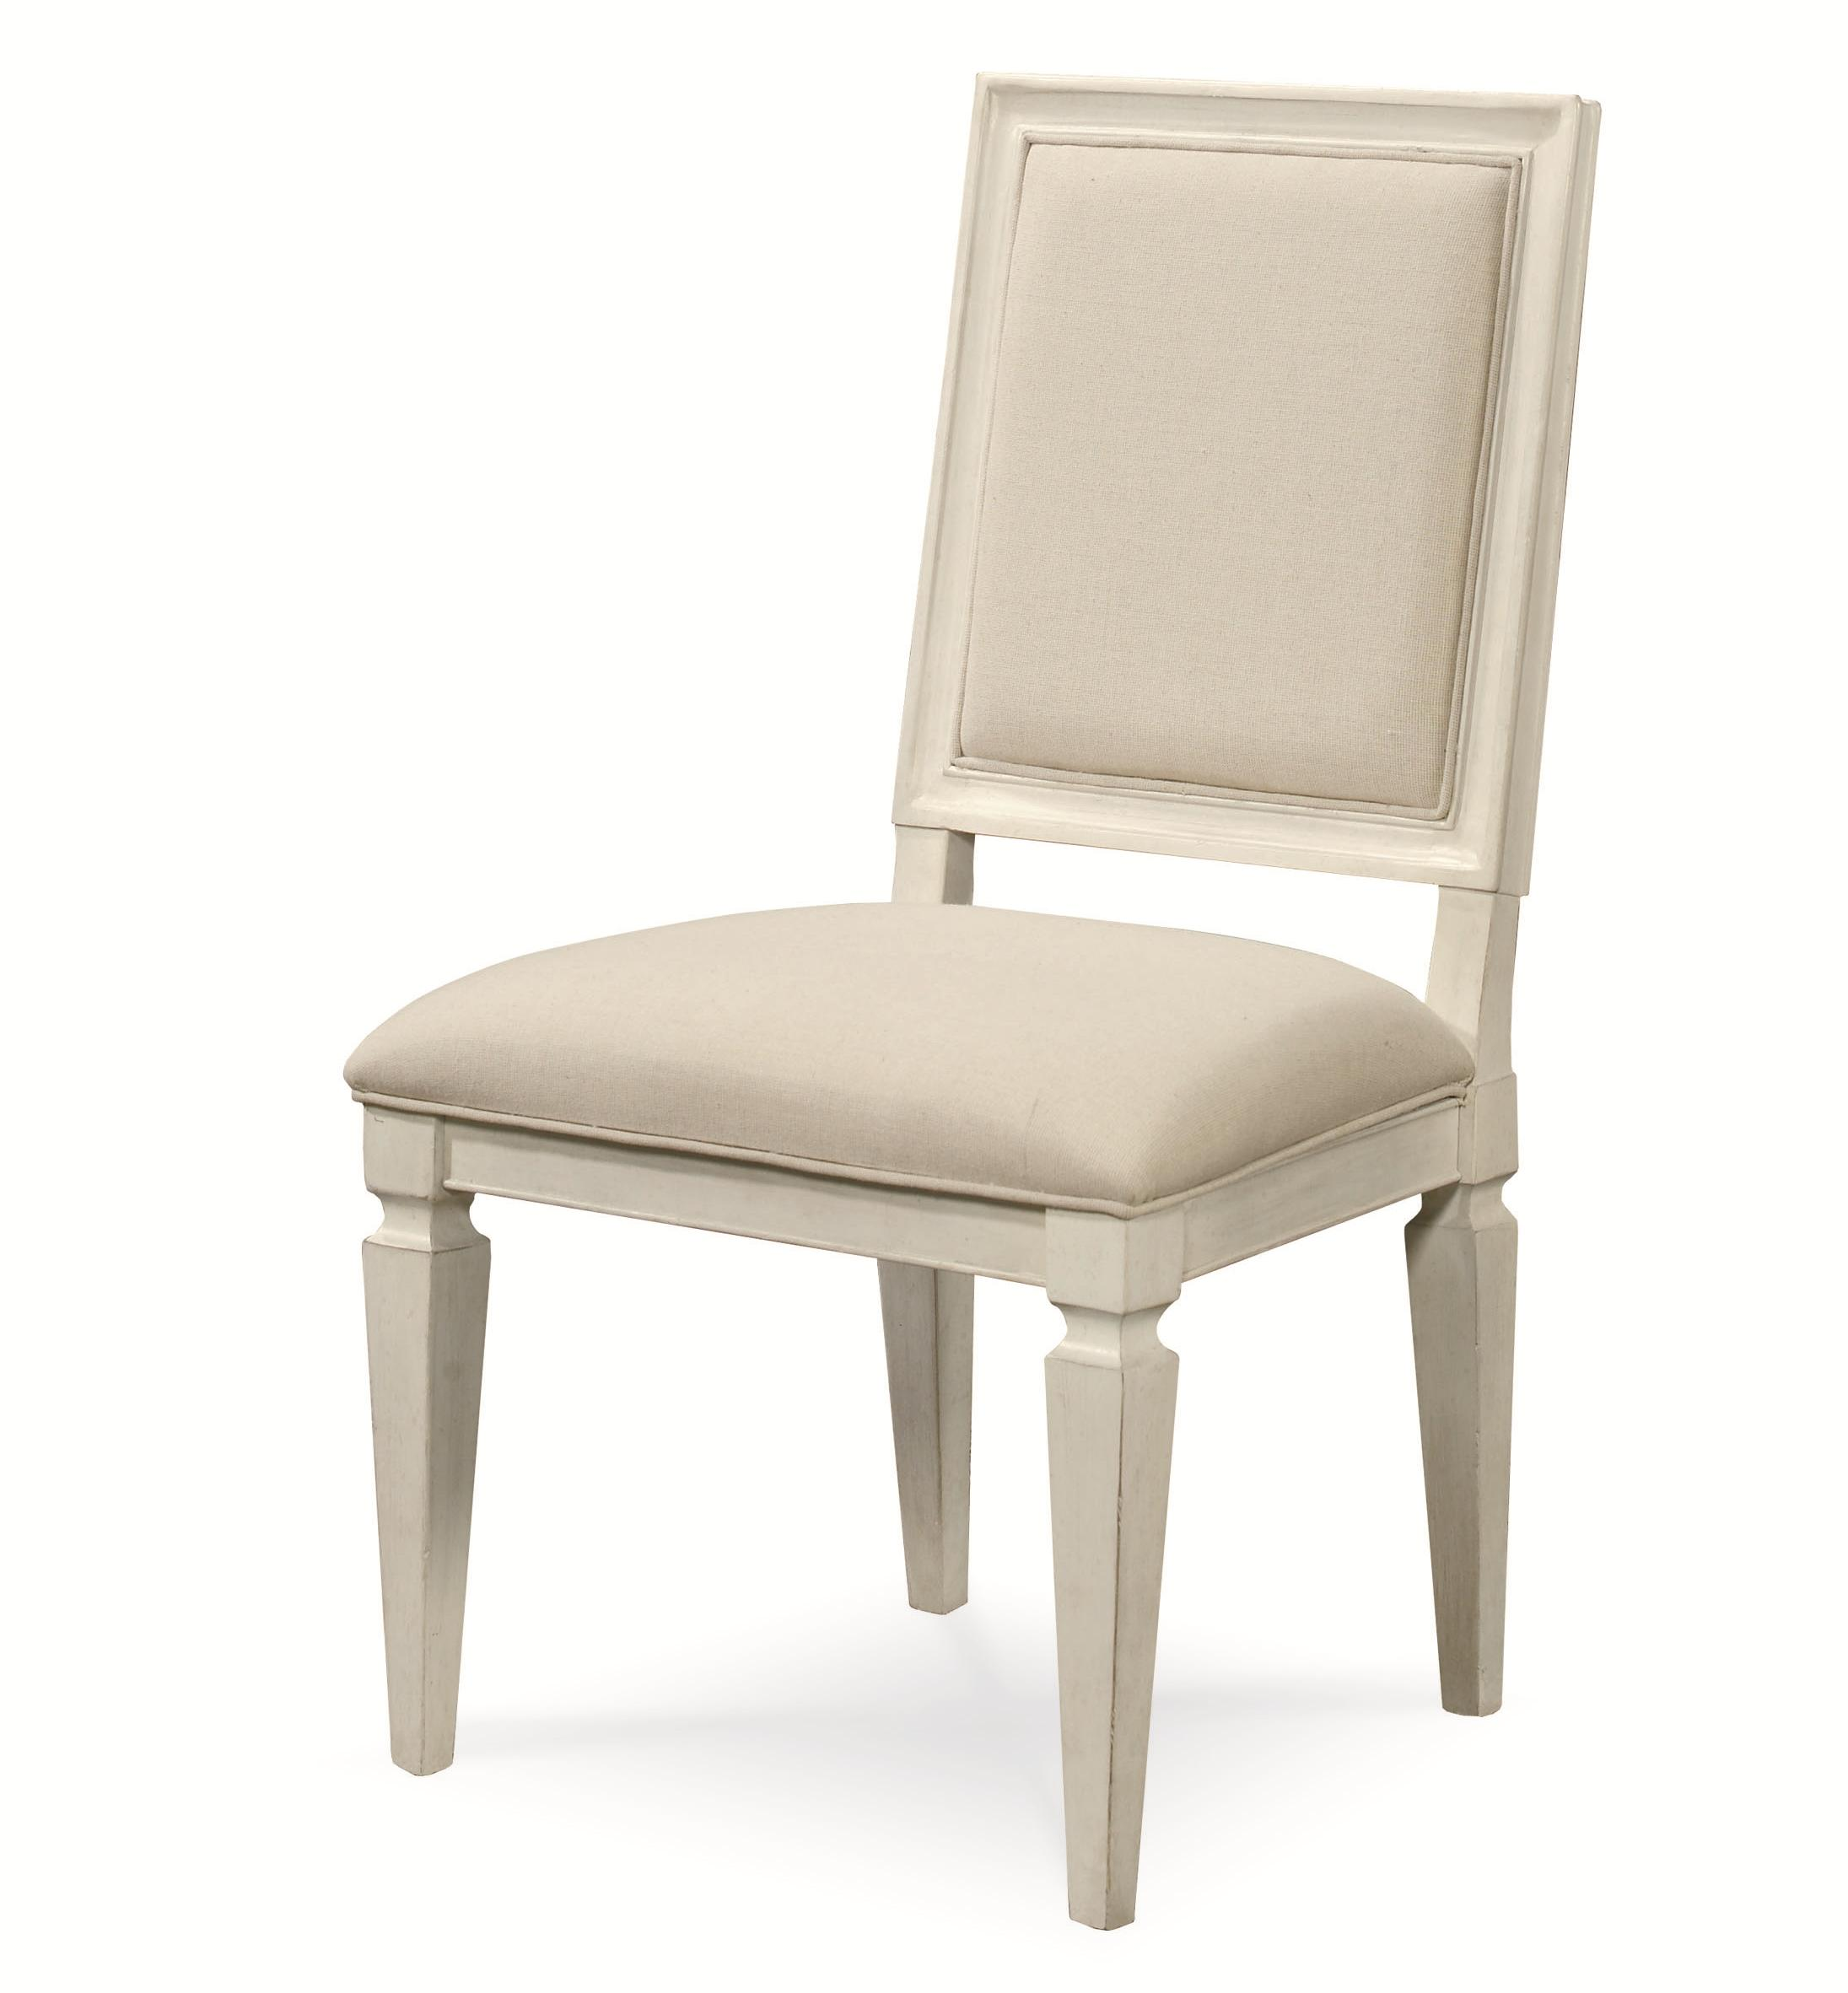 Accent Chairs Melbourne Universal Summer Hill 987634 Rta Woven Accent Side Chair